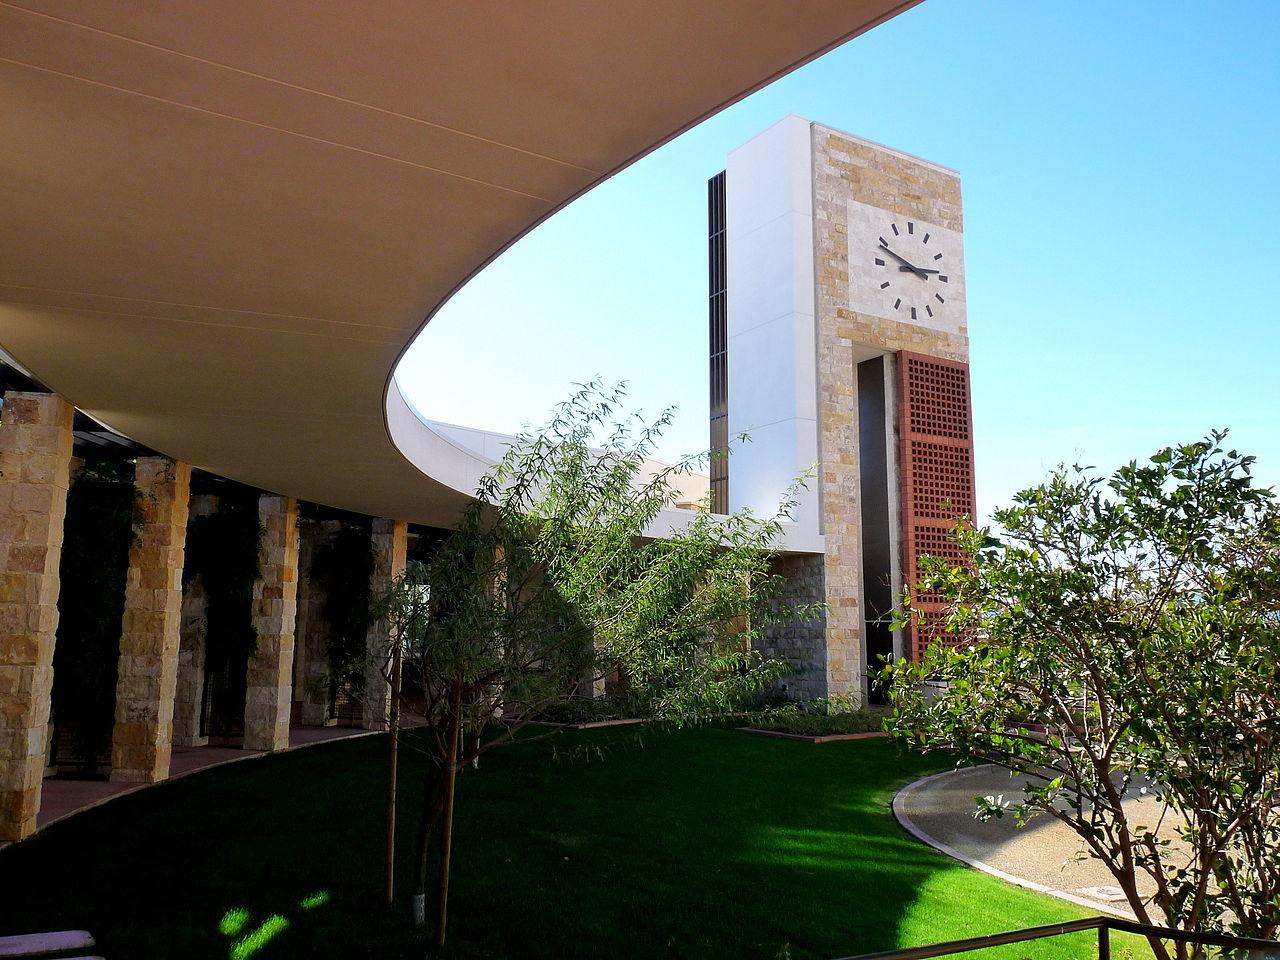 Surprise (AZ) United States  city images : Clock Tower at CommUniv Surprise, AZ, USA 2250079 Wikimedia ...